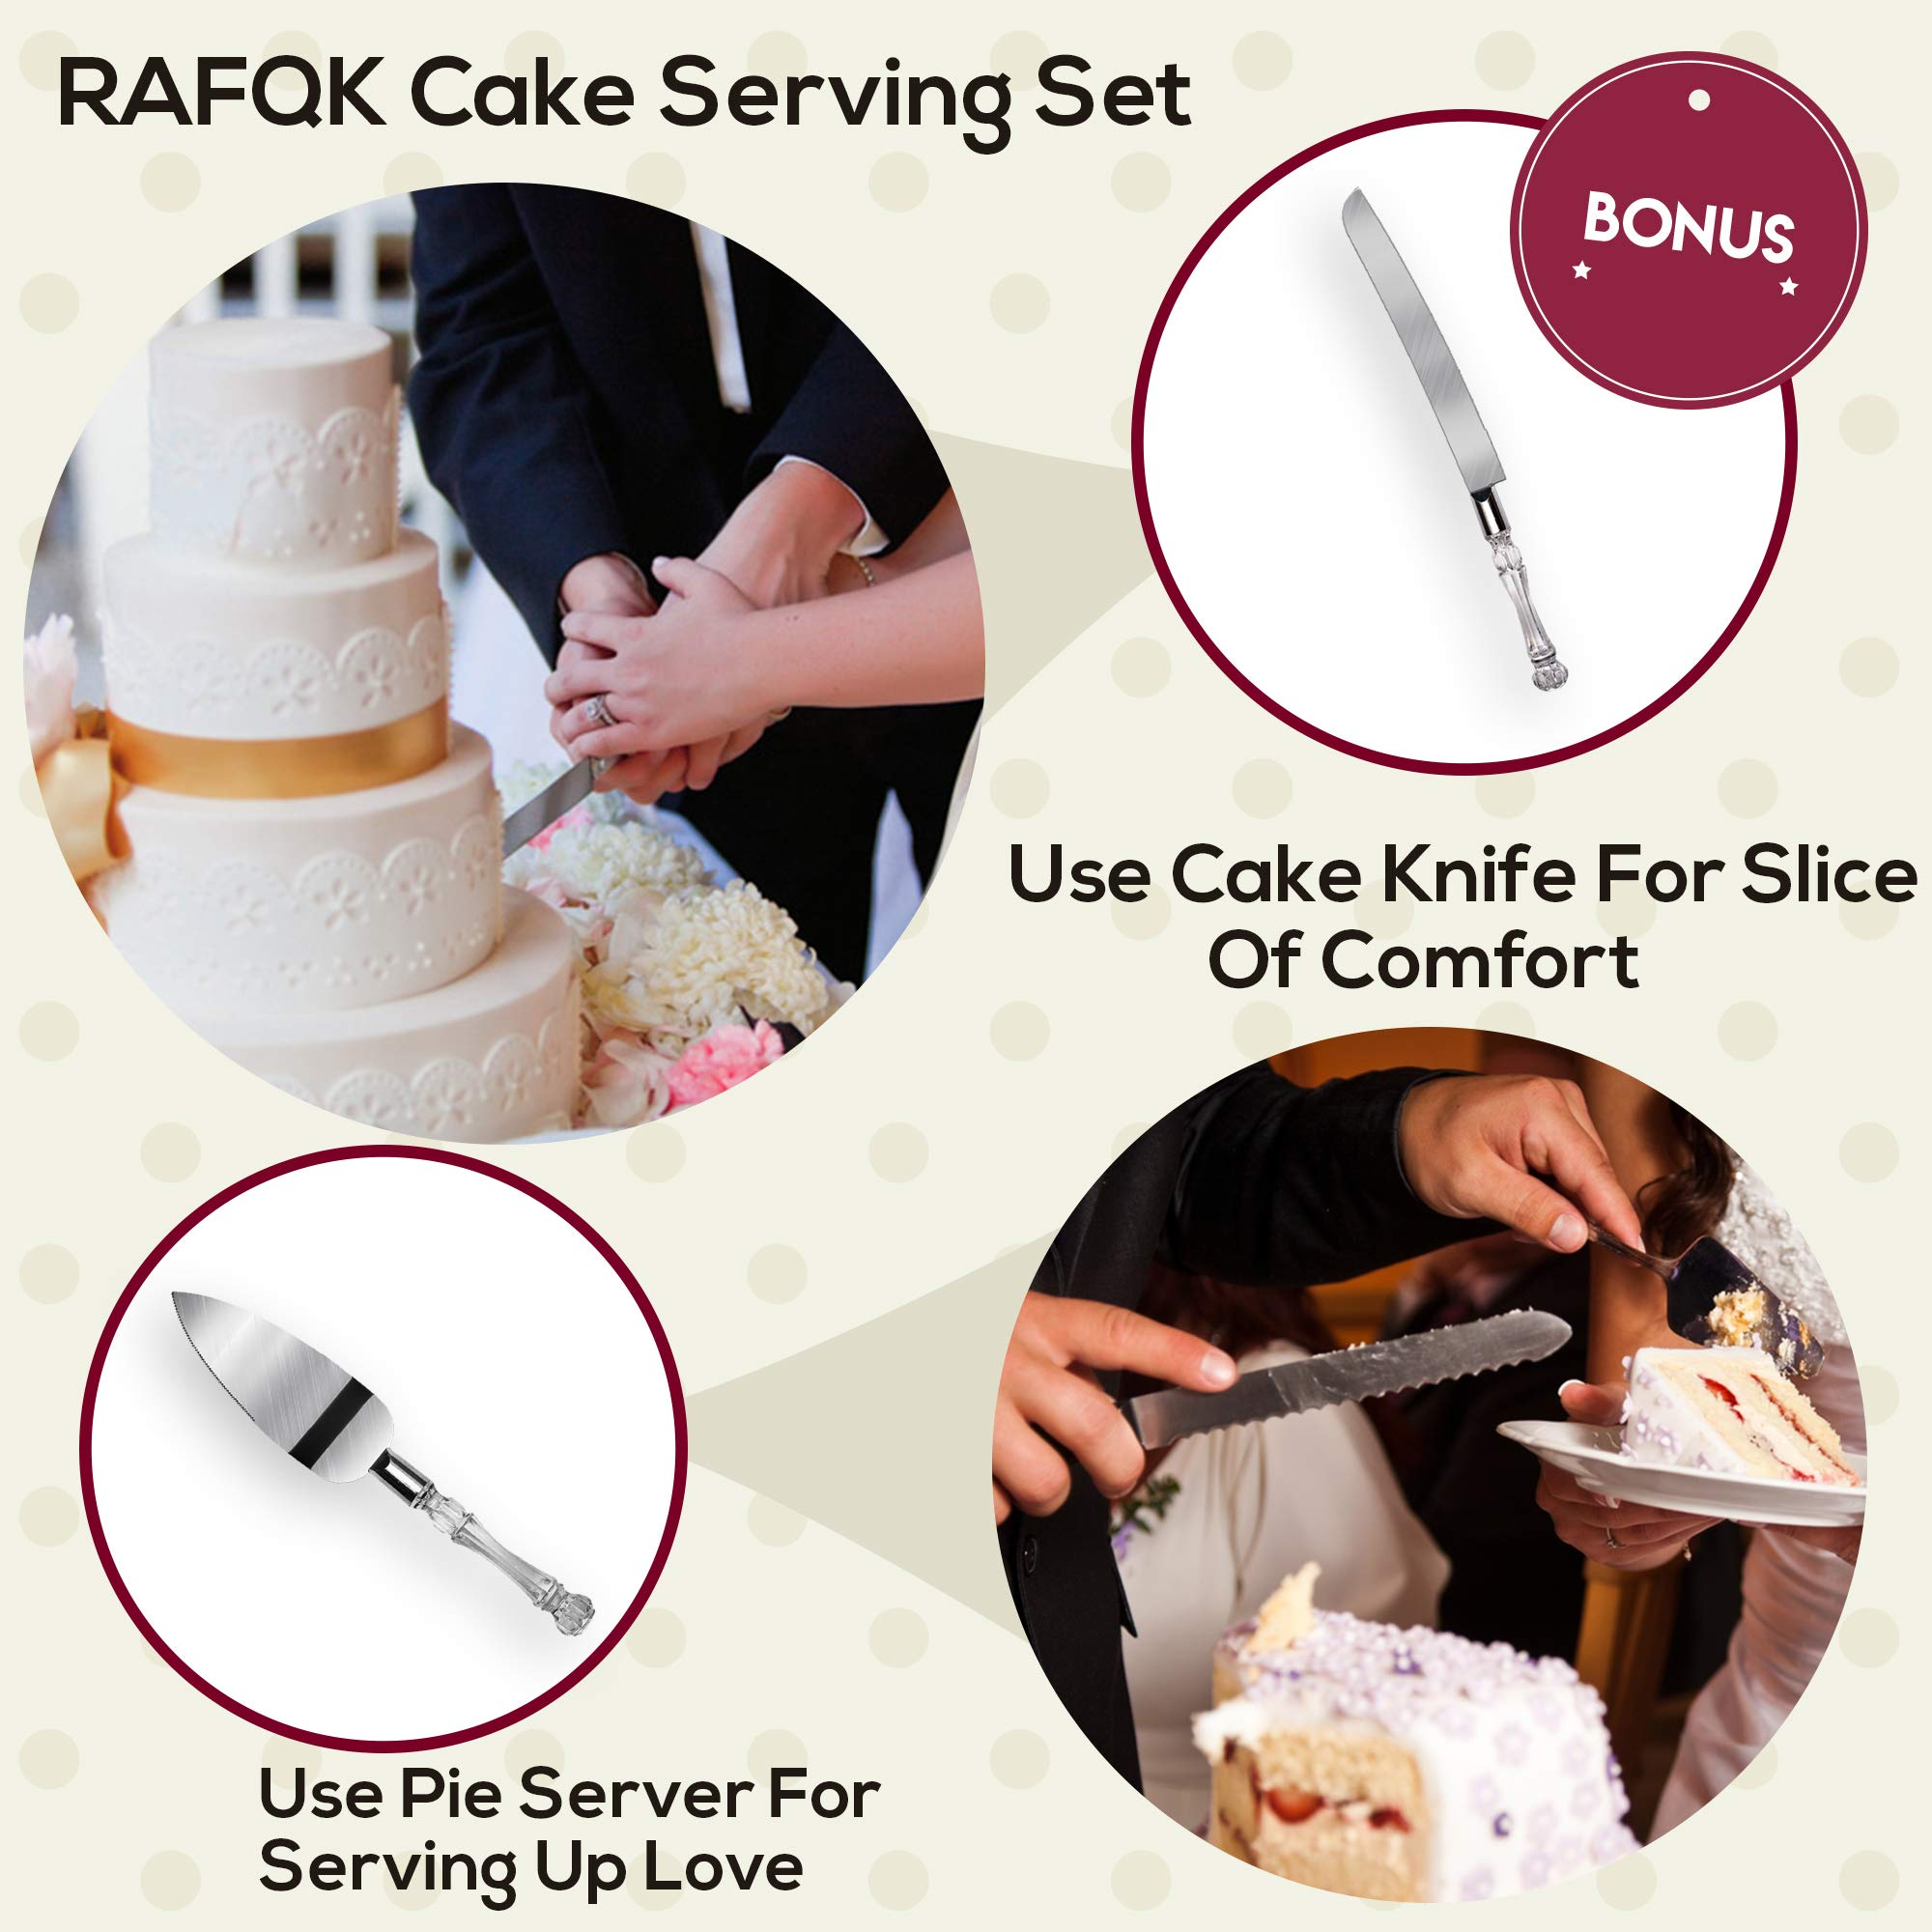 100 Pcs Cake Decorating Kit with Aluminum Metal Turntable-Rotating Stand-Cake server & knife set-48 Numbered Icing tips-7 Russian Piping nozzles-Straight & Angled Spatula-Cake Leveler& Baking supplies by RFAQK (Image #3)